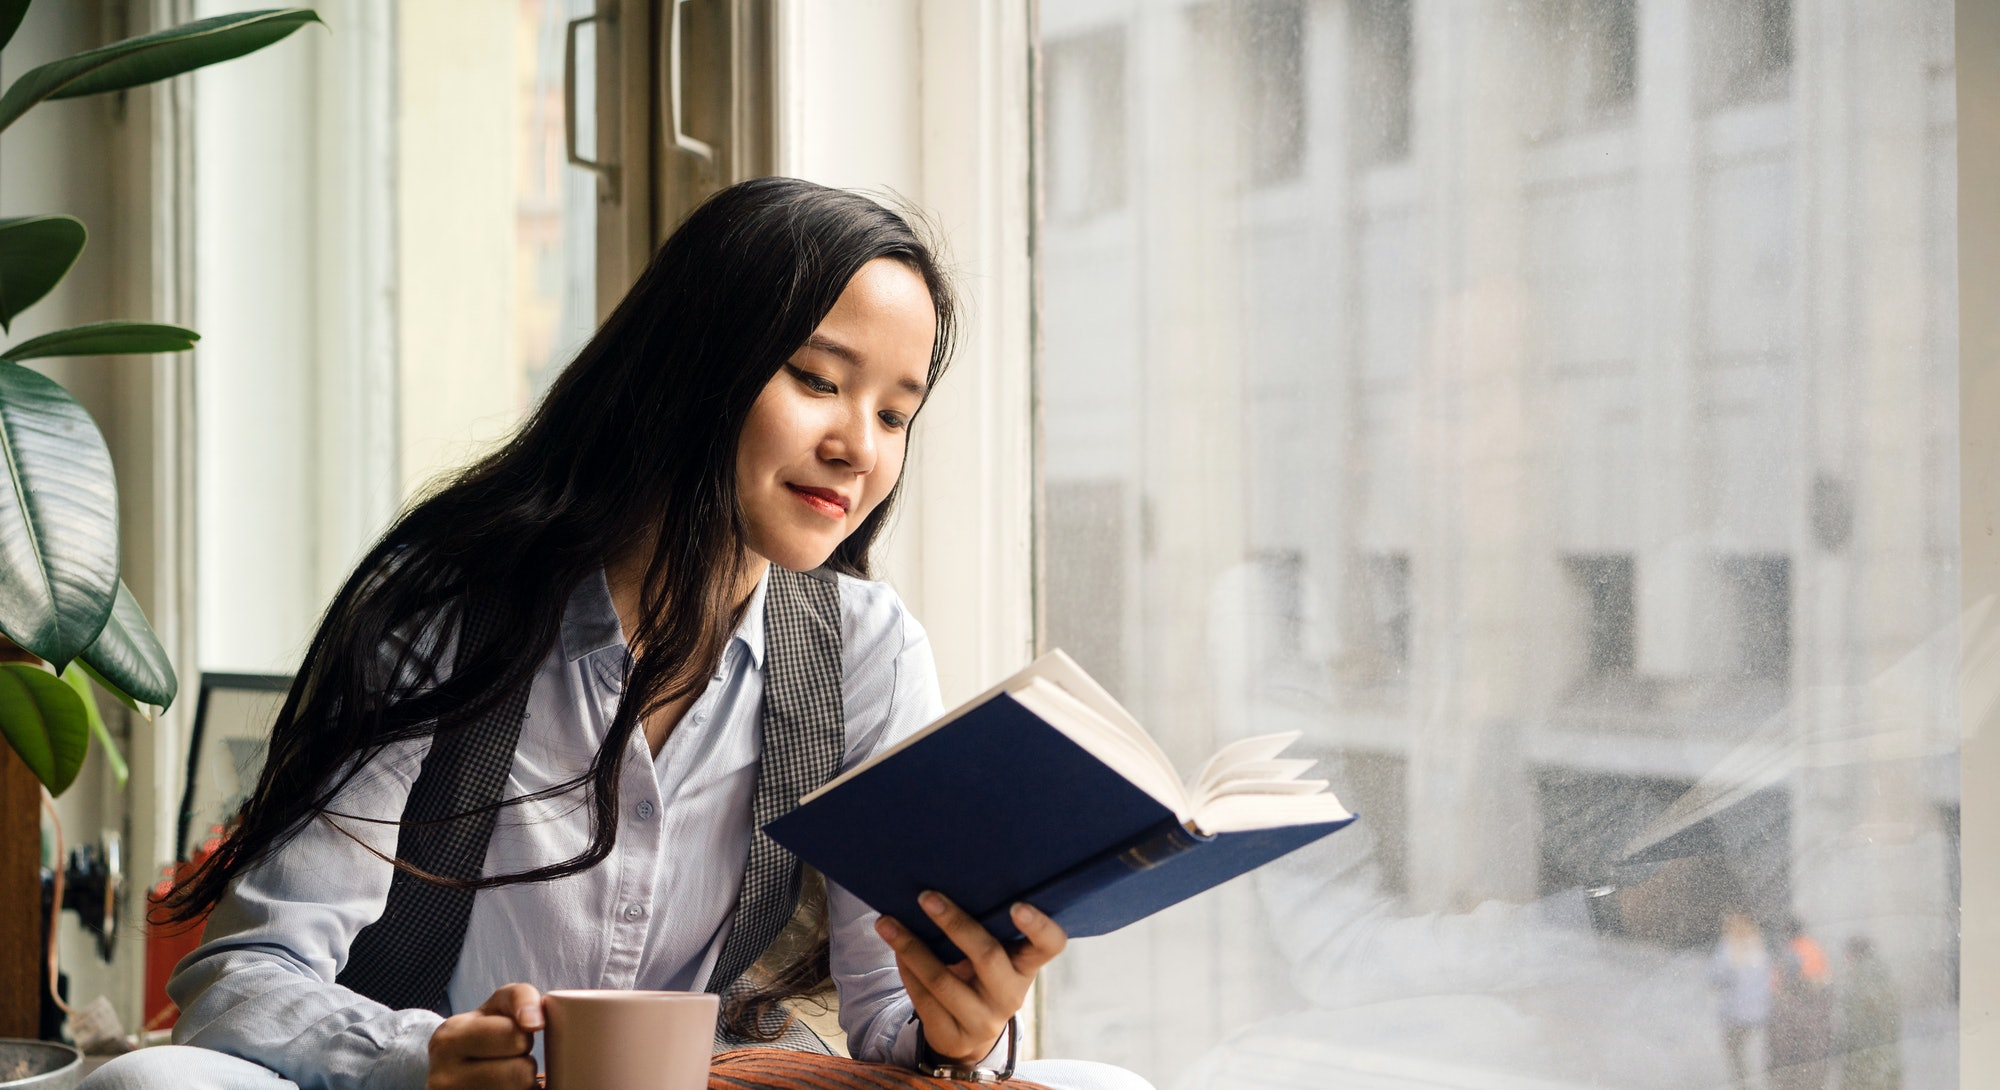 Young asian woman sitting by the window on the sofa with a cup of tea, book and pillow, laughing. Remote work at home. Mental health and relax